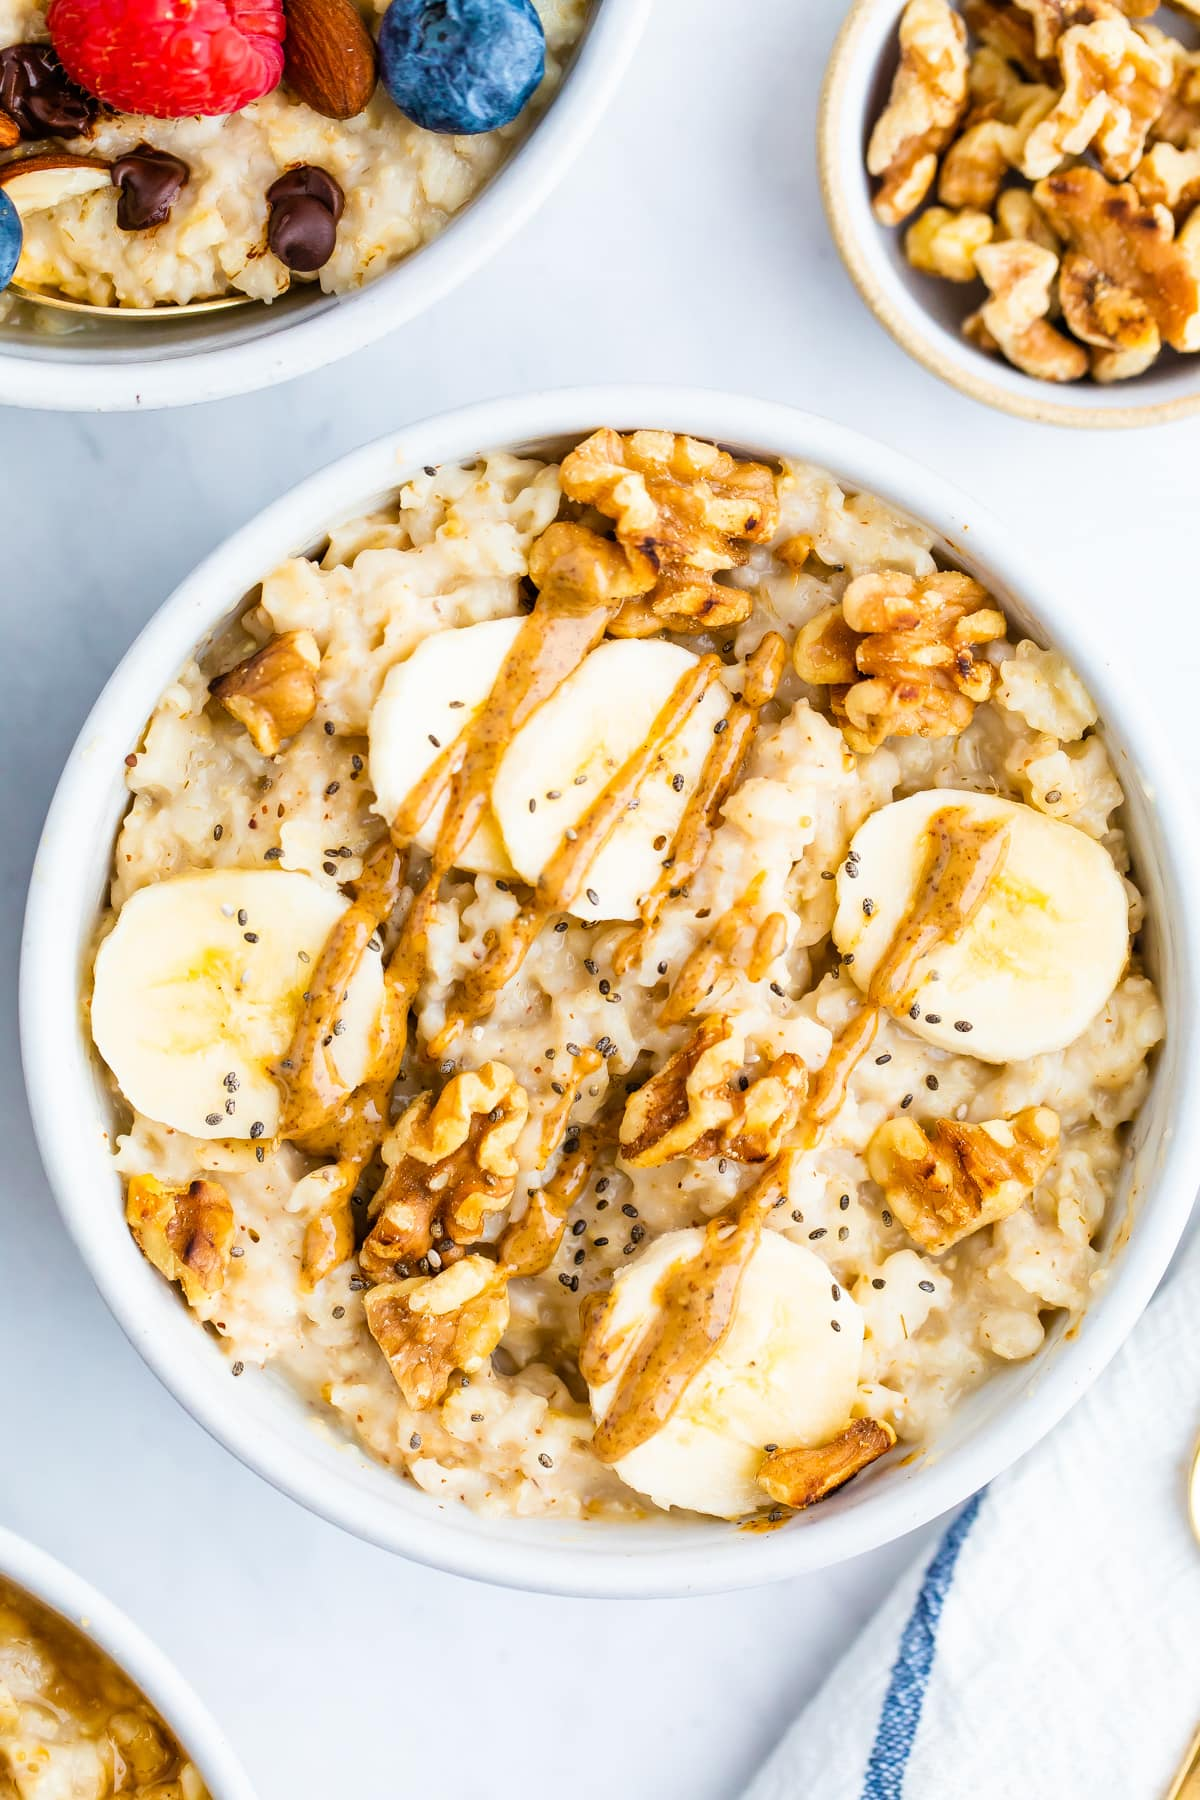 Bowl of oatmeal topped with walnuts, banana slices and peanut butter.